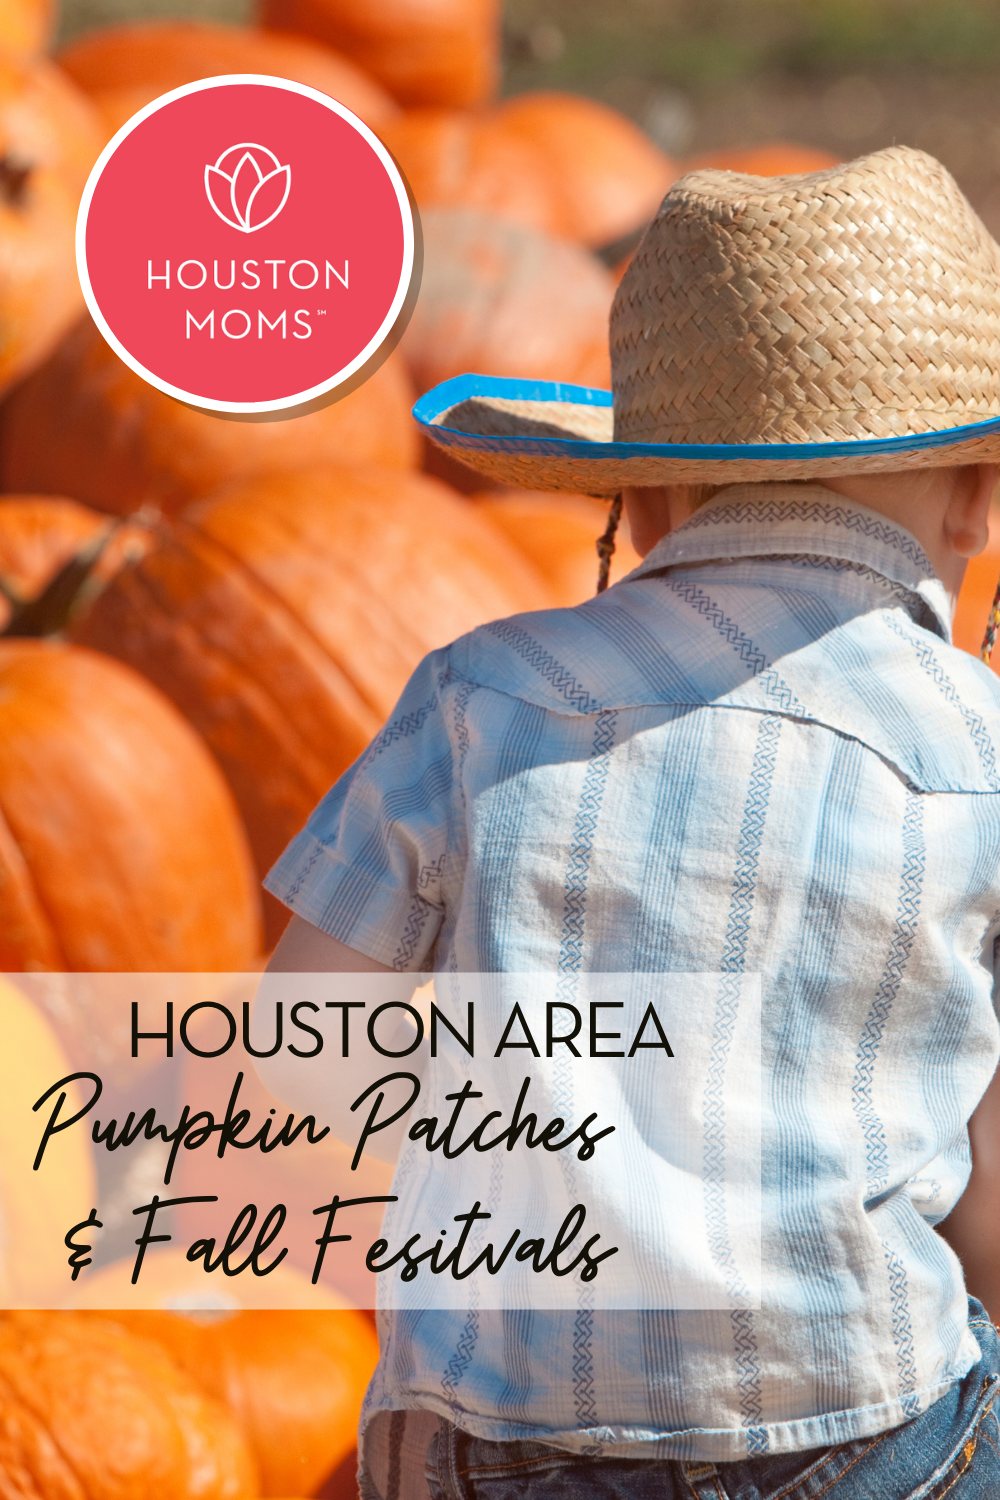 "Houston Moms ""Houston Area Pumpkin Patches & Fall Festivals"" #houstonmoms #houstonmomsblog #momsaroundhouston"